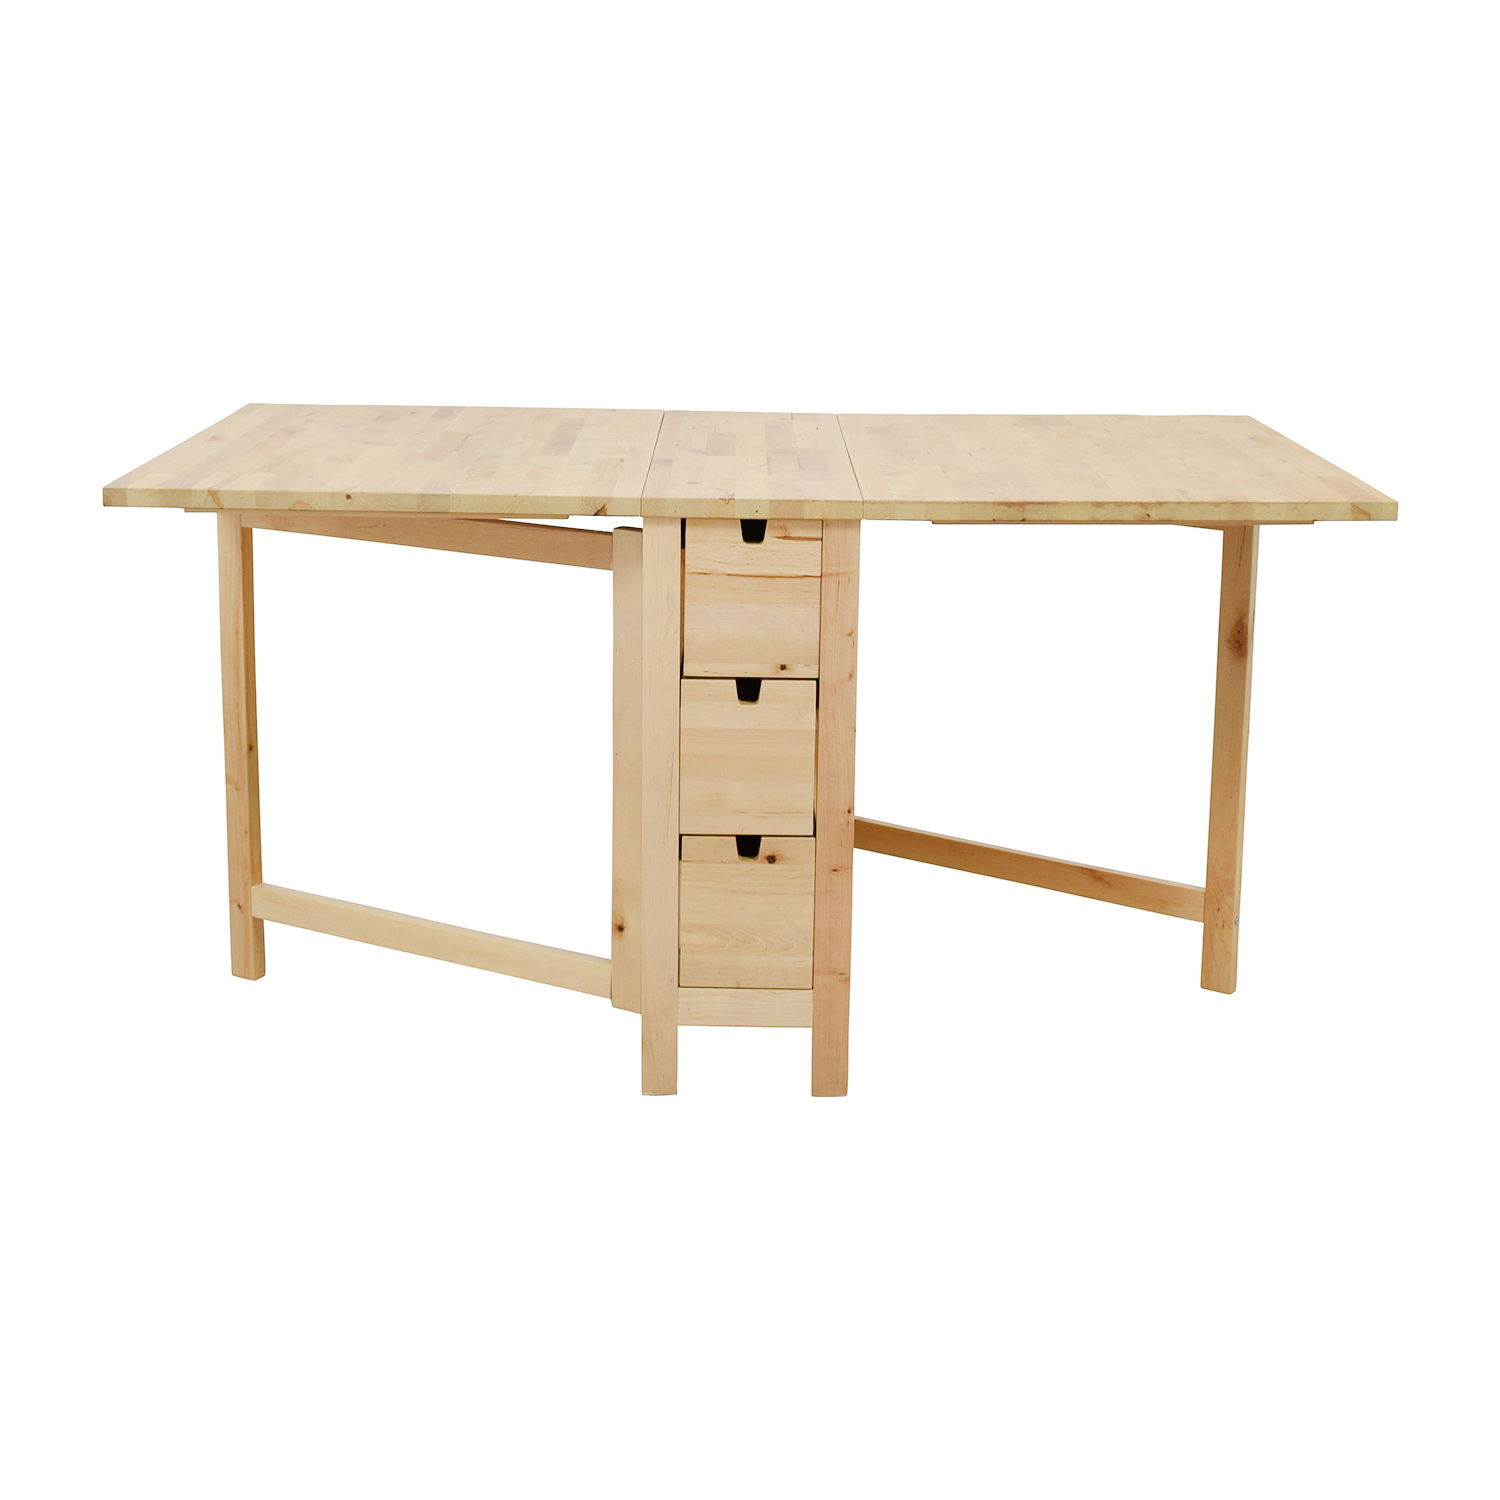 Beau 49% OFF   IKEA IKEA Birch Norden Gateleg Drop Leaf Table With Drawers /  Tables